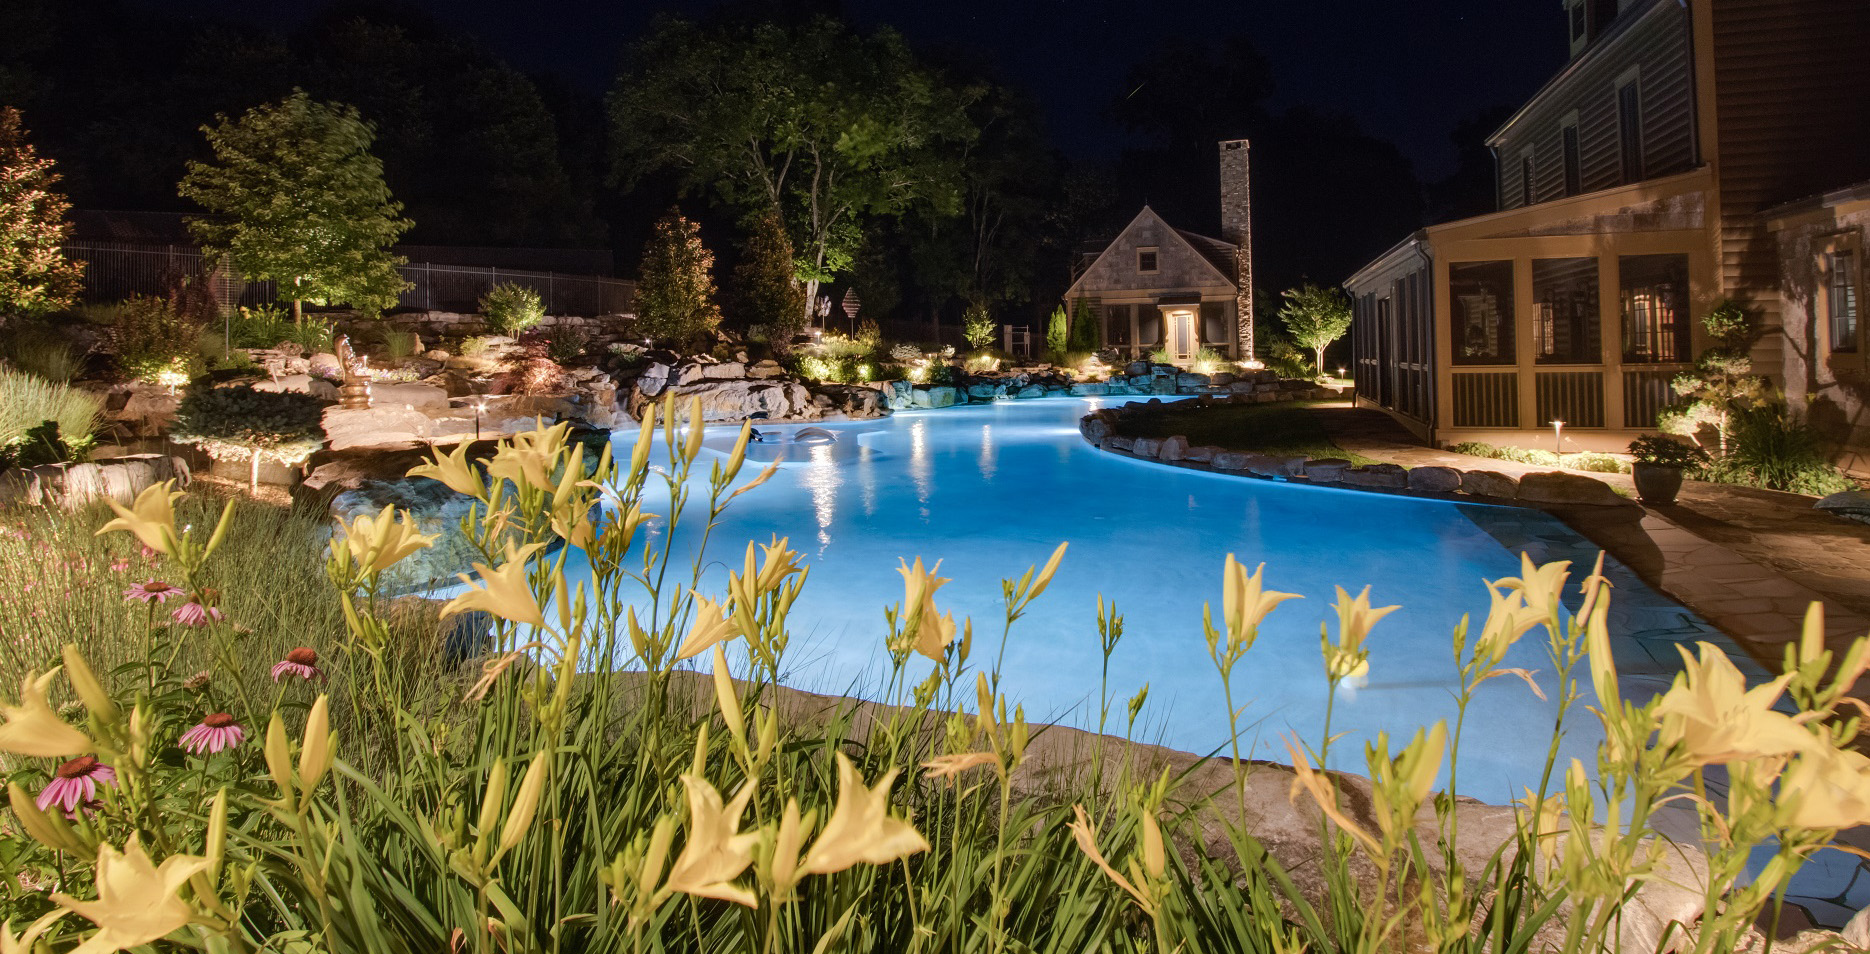 Pool and surrounding yard lighting